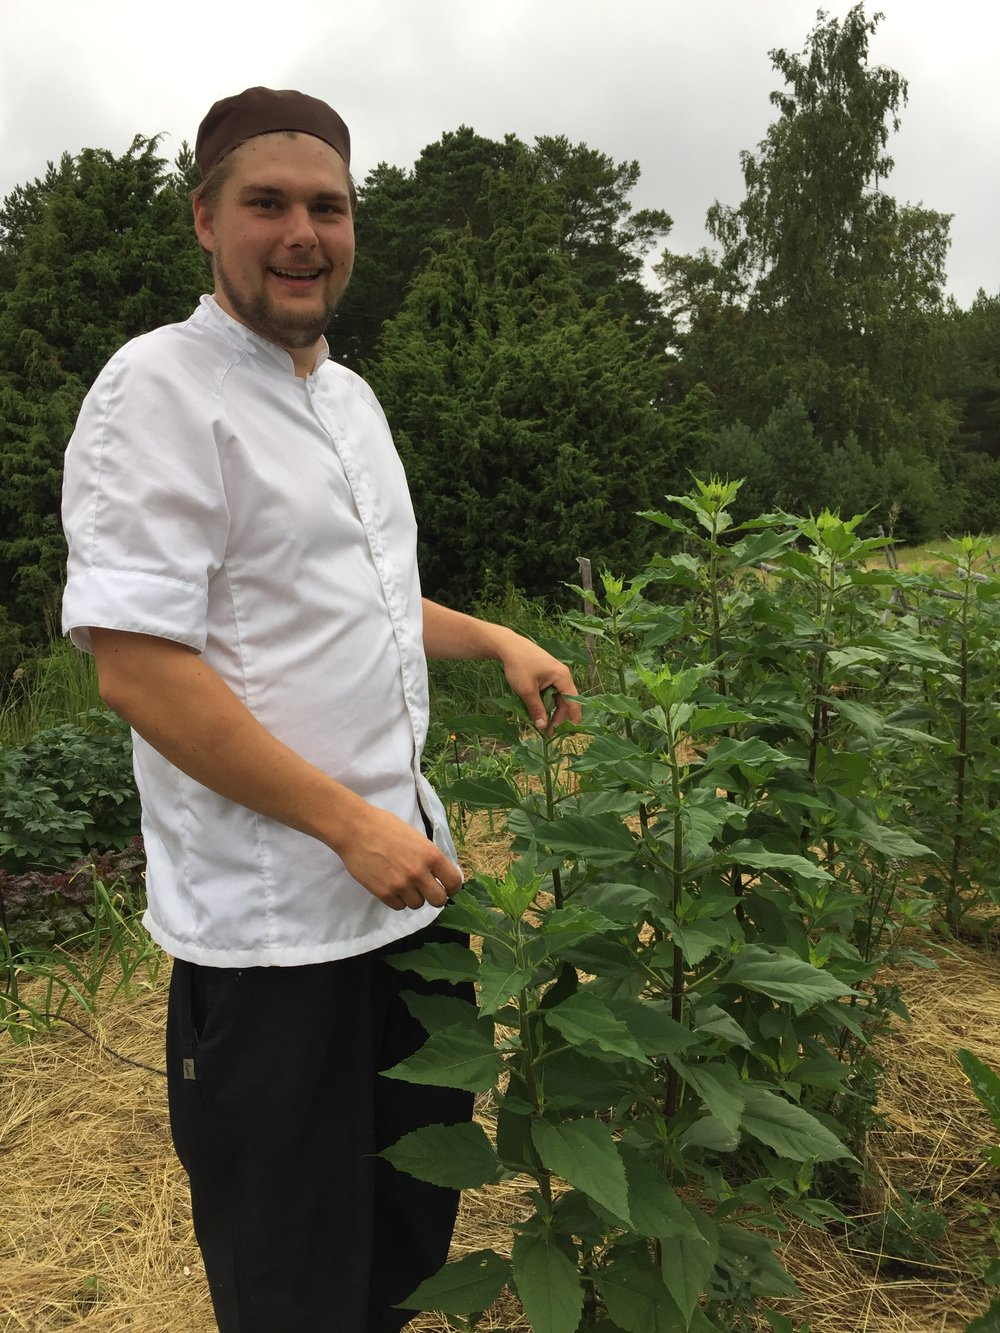 Aland chef in garden.jpg